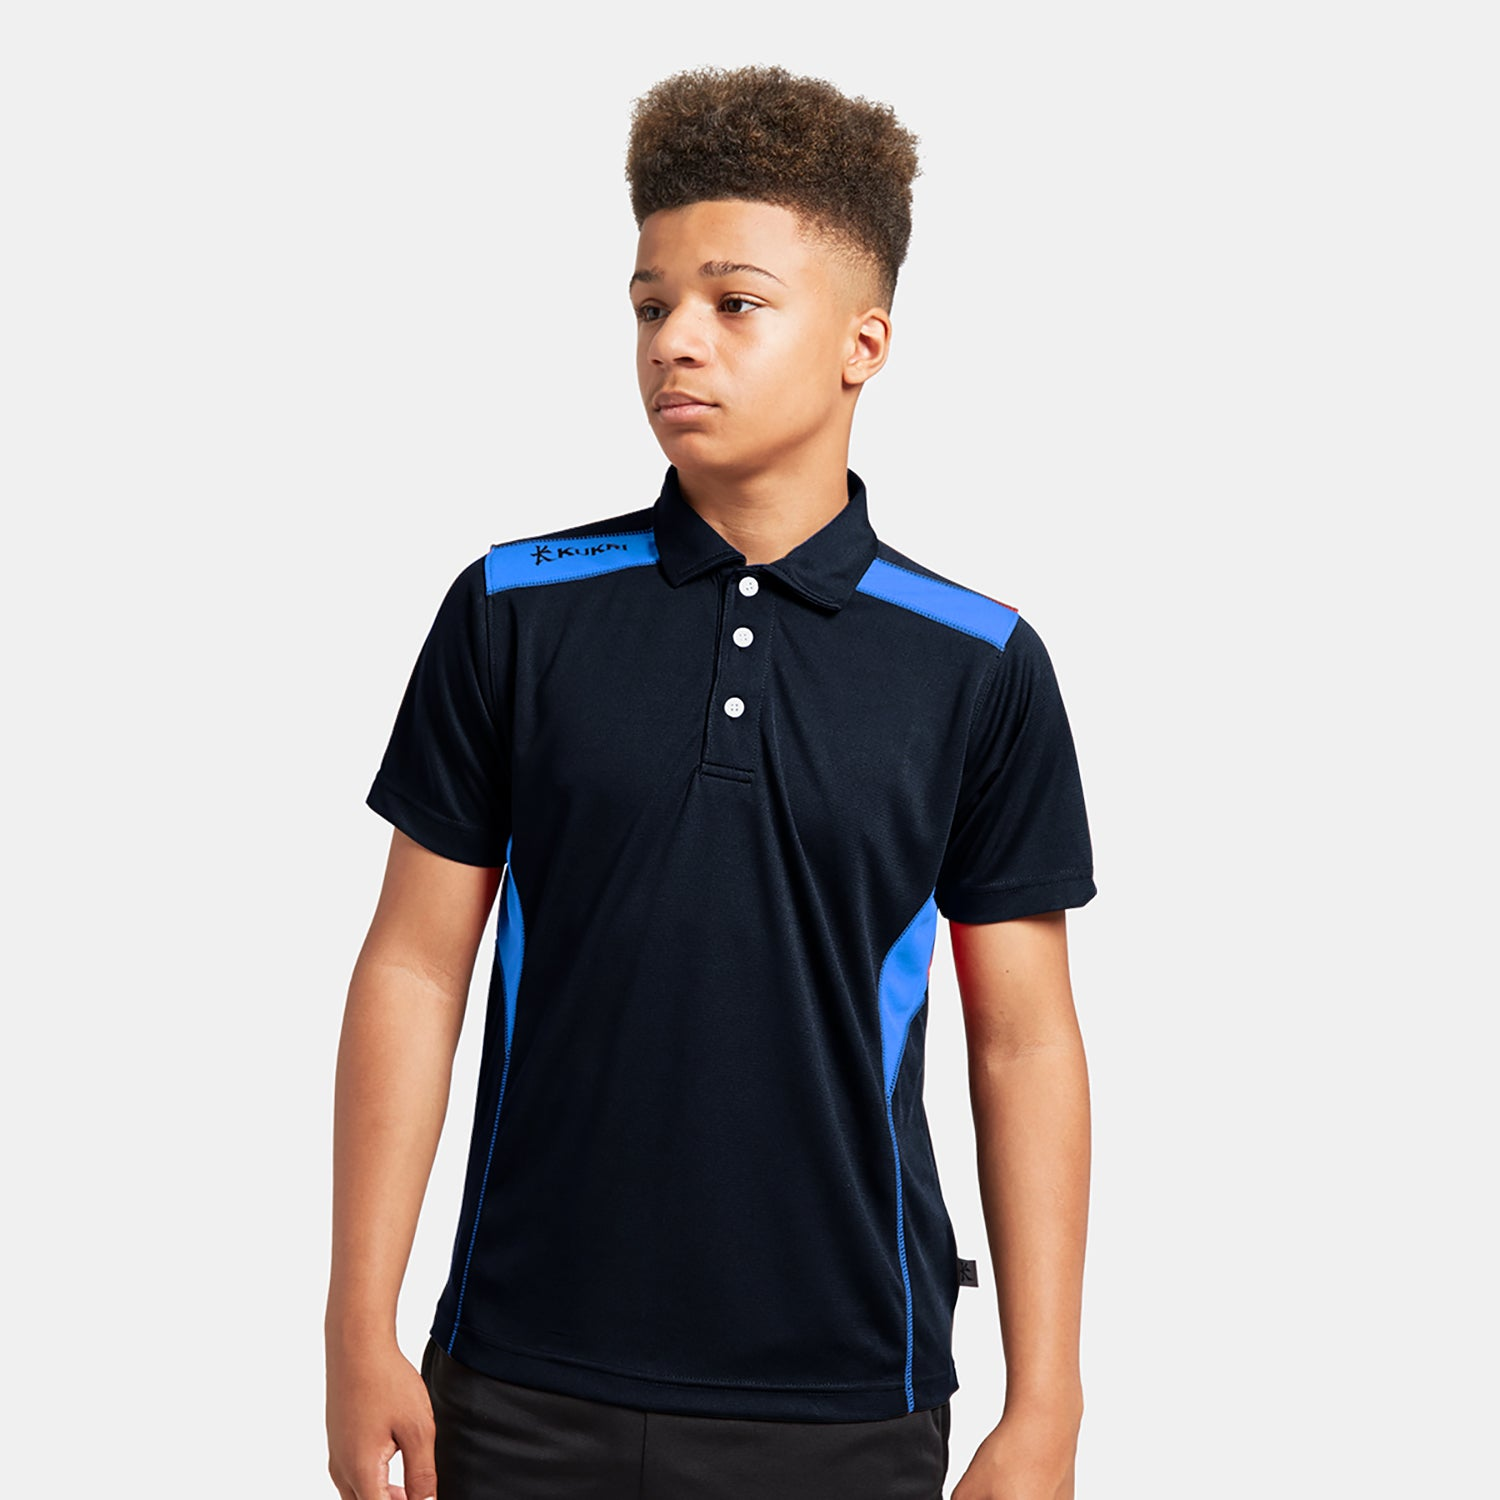 Kukri Half Sleeve Polo Shirt For Boys-Dark Navy & Sky-BE8128